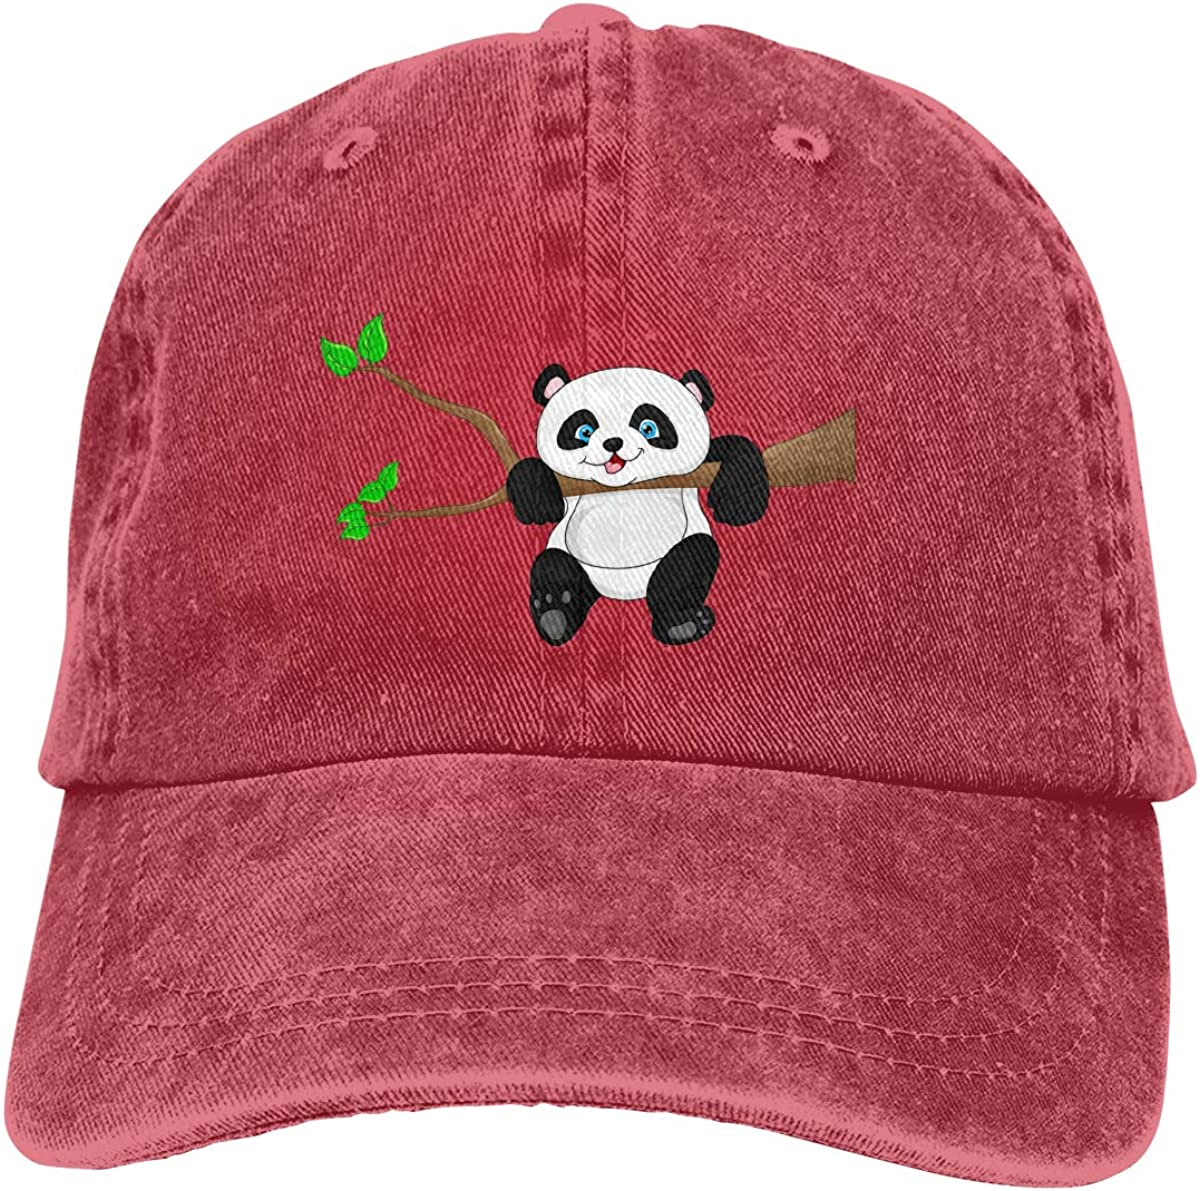 SY COMPACT Unisex Man /& Womens Panda Washed Dyed Vintage Caps Adjustable